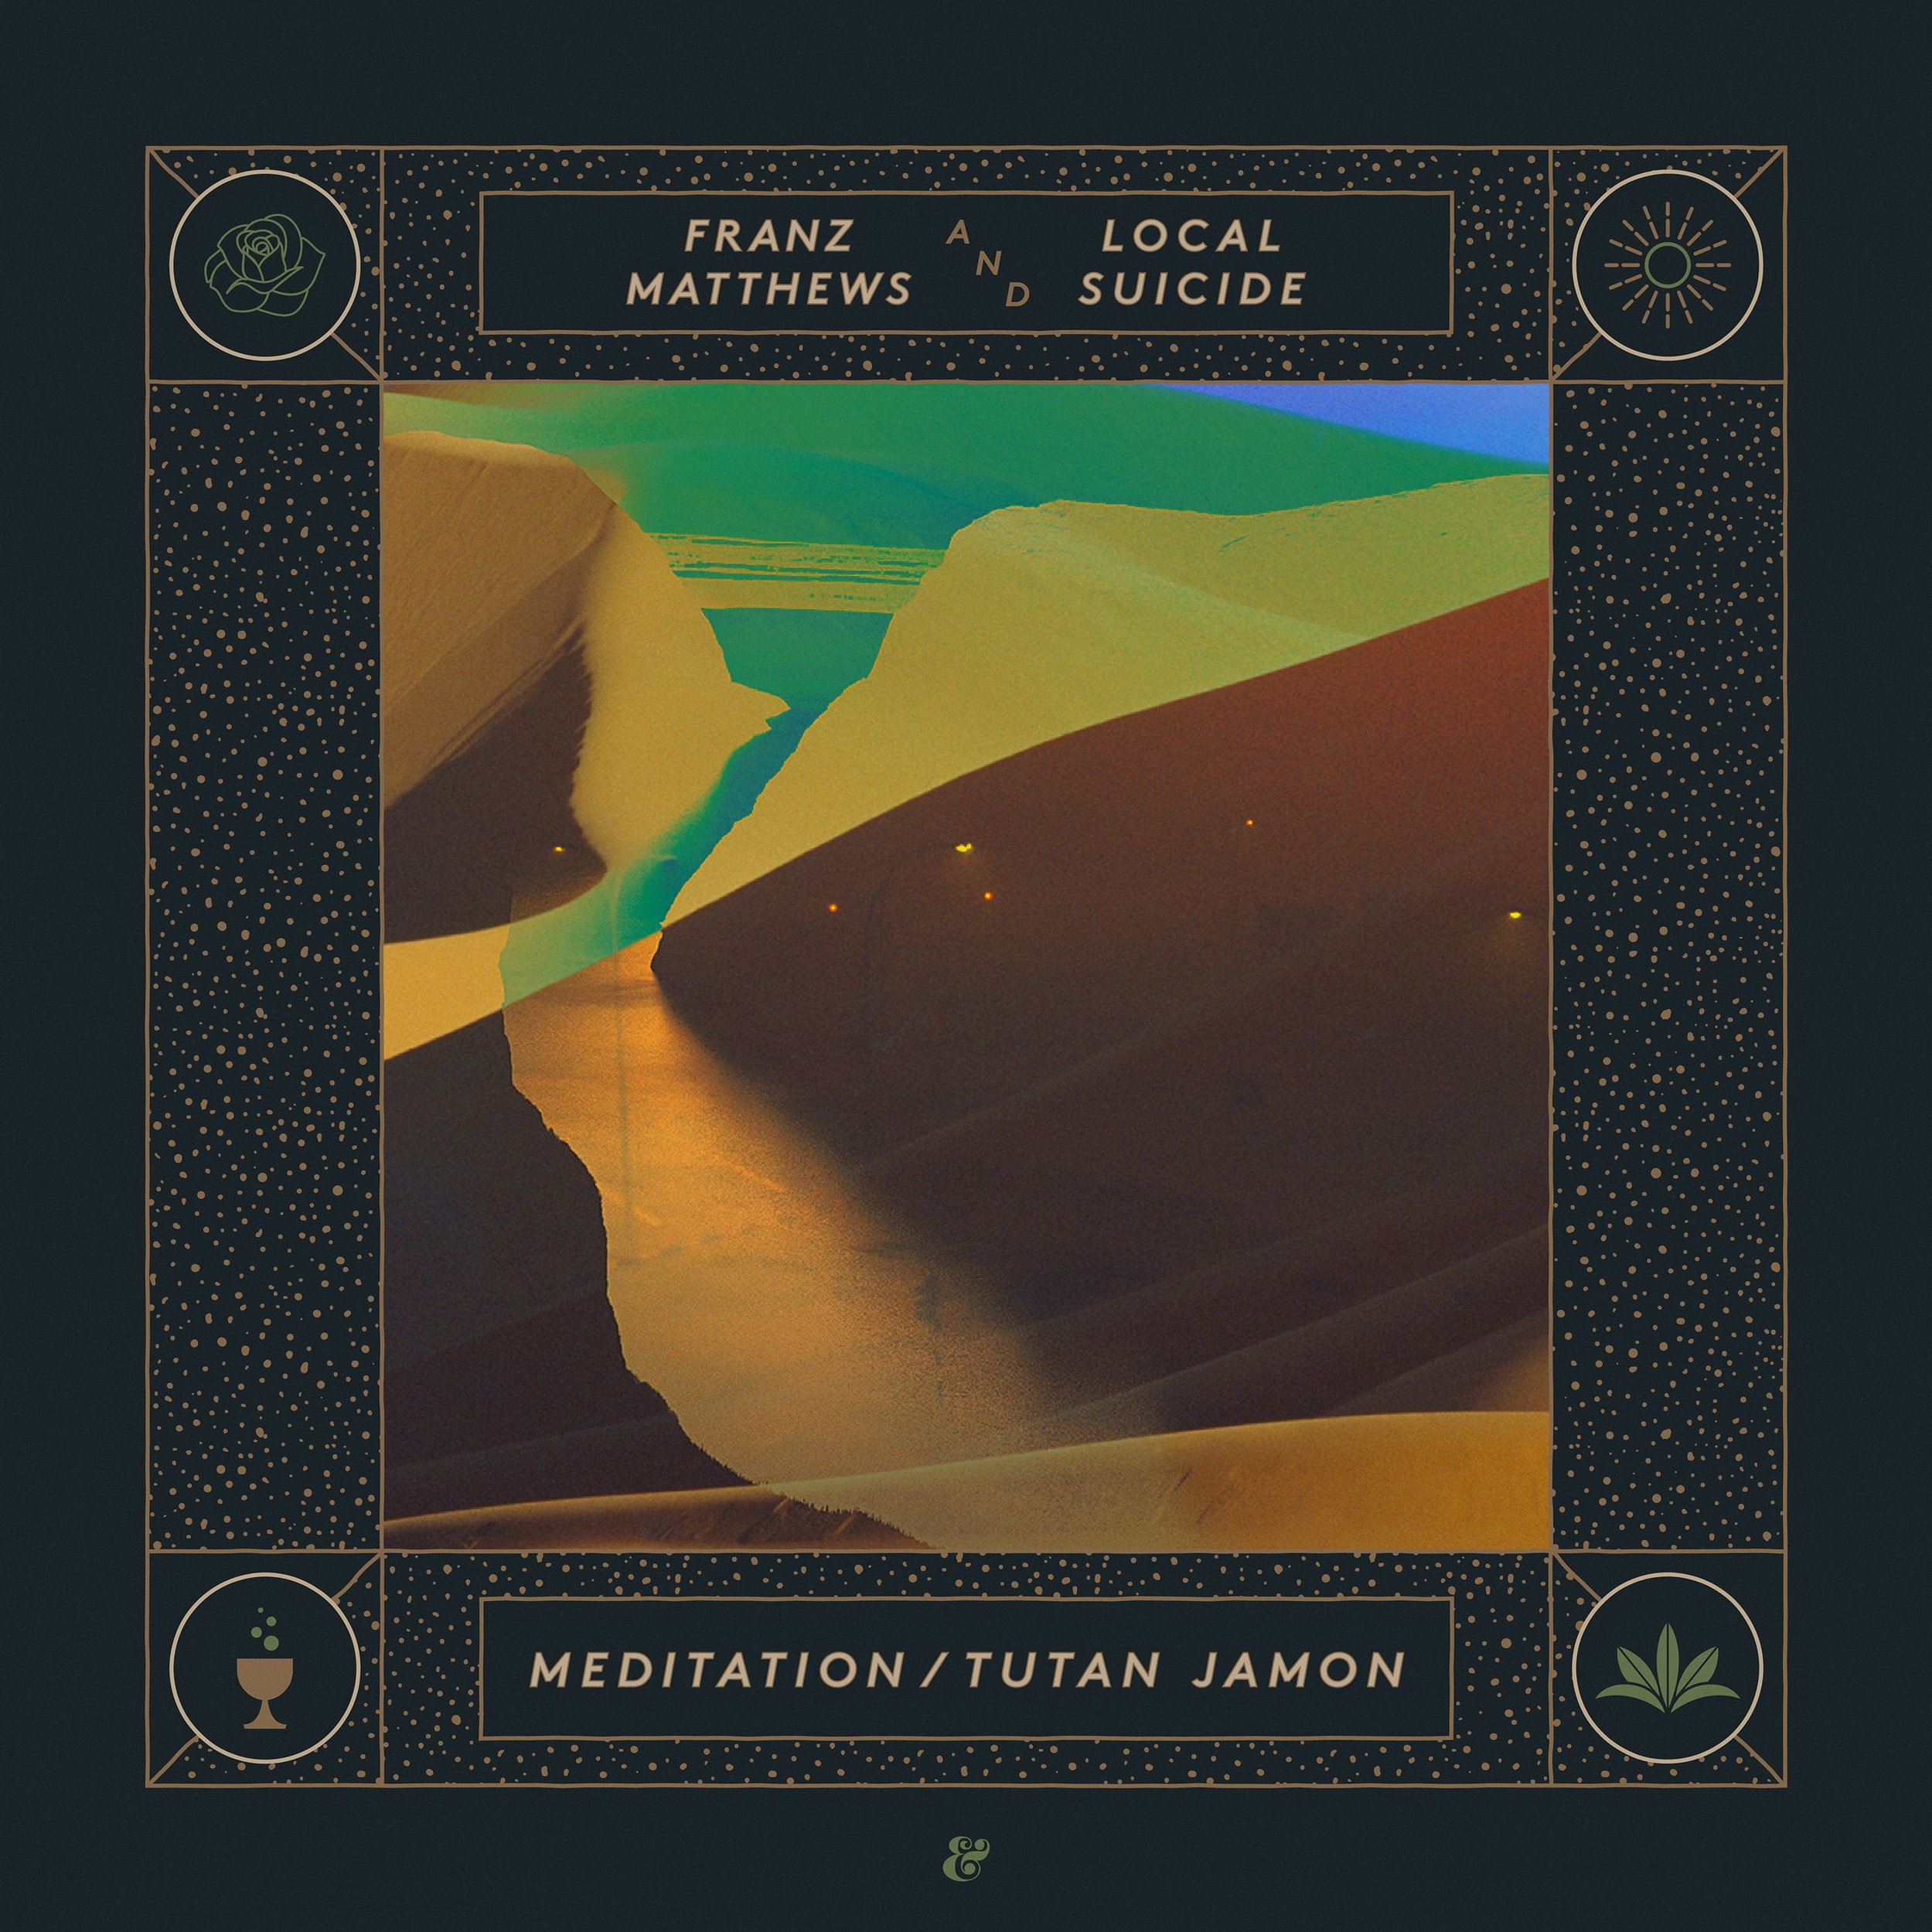 FRANZ MATTHEWS & LOCAL SUICIDE Meditation / Tutan Jamon EP